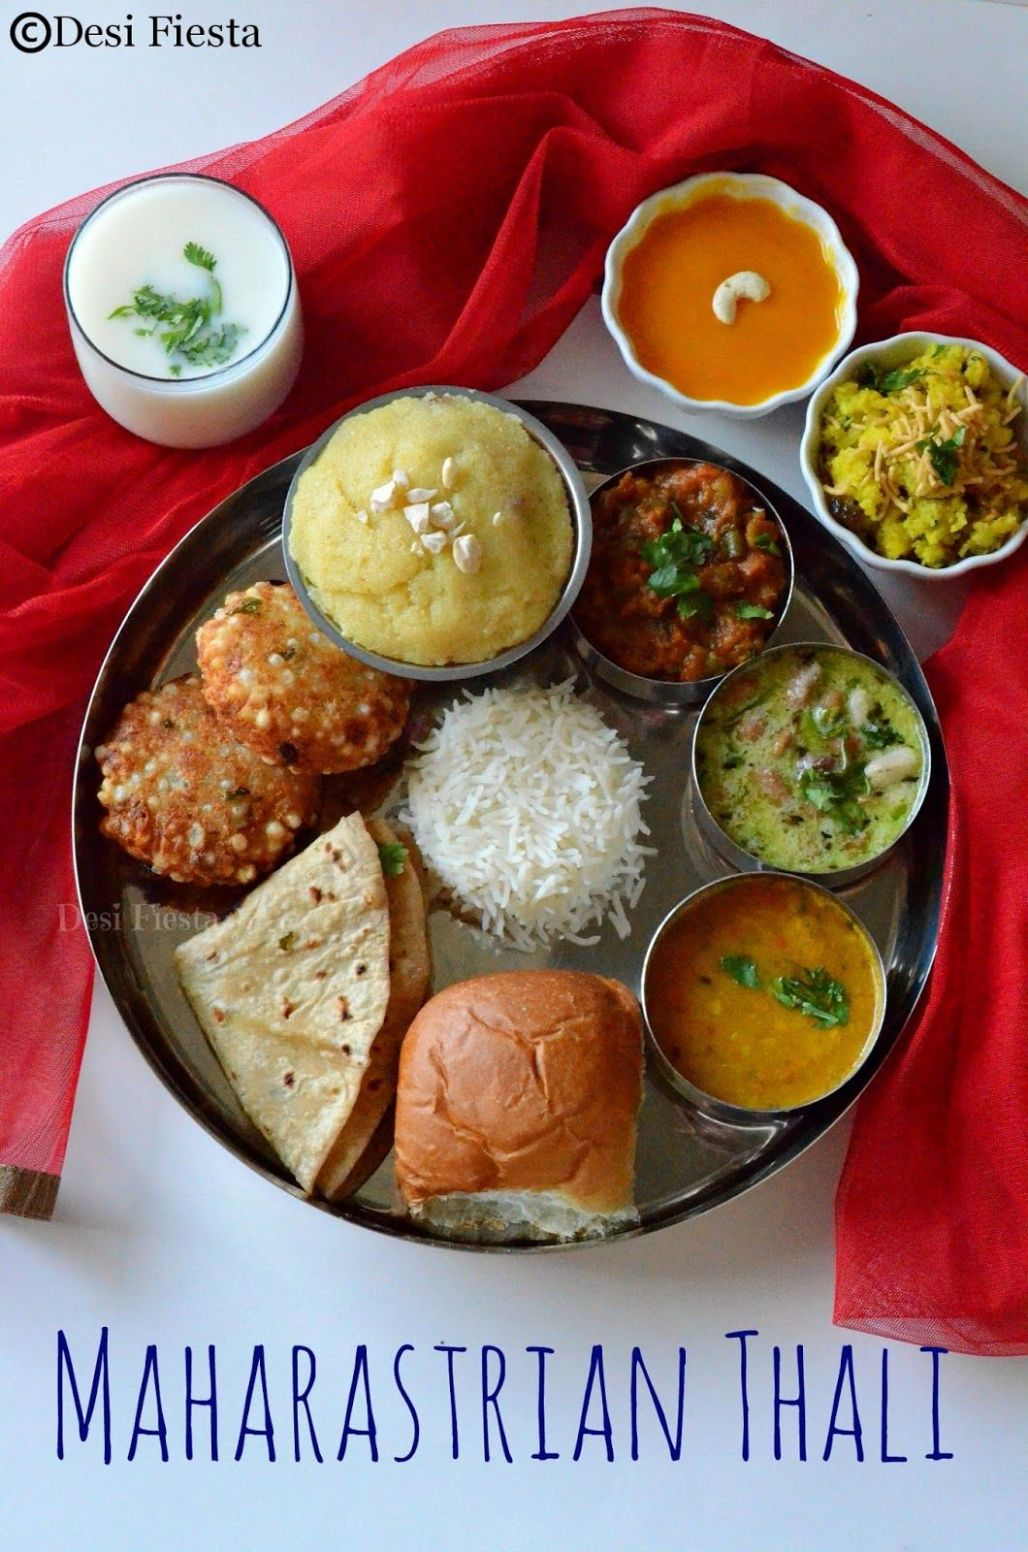 Maharastrian Thali | Indian food recipes, Desi food, Food recipes